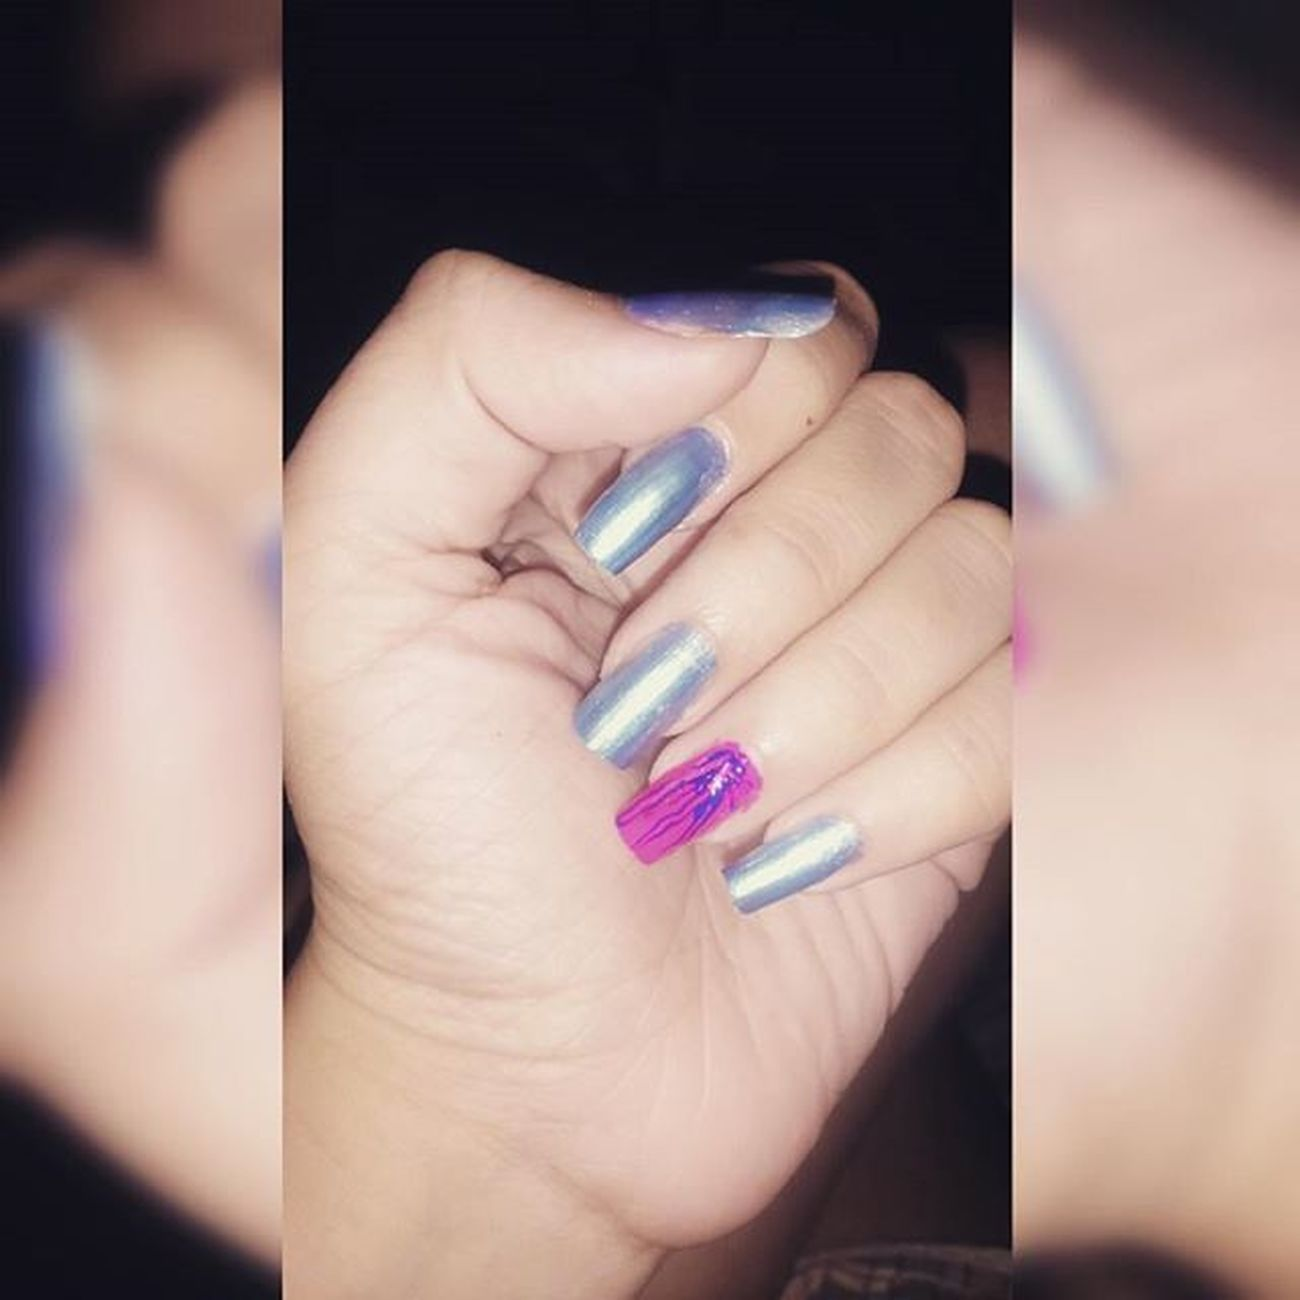 Quase lá 👌 💅 Unhas Nails Fashion Nail Love Beautiful Esmalte  Summer Nailart  Cute Evening Art Japanese  Fire GoodTimes Unhasdasemana Vip Polish Gliter SXSW Girl Beauty Manicure California Bestie  nailpolish stoned sparkles bubbles viciadaemvidrinhos